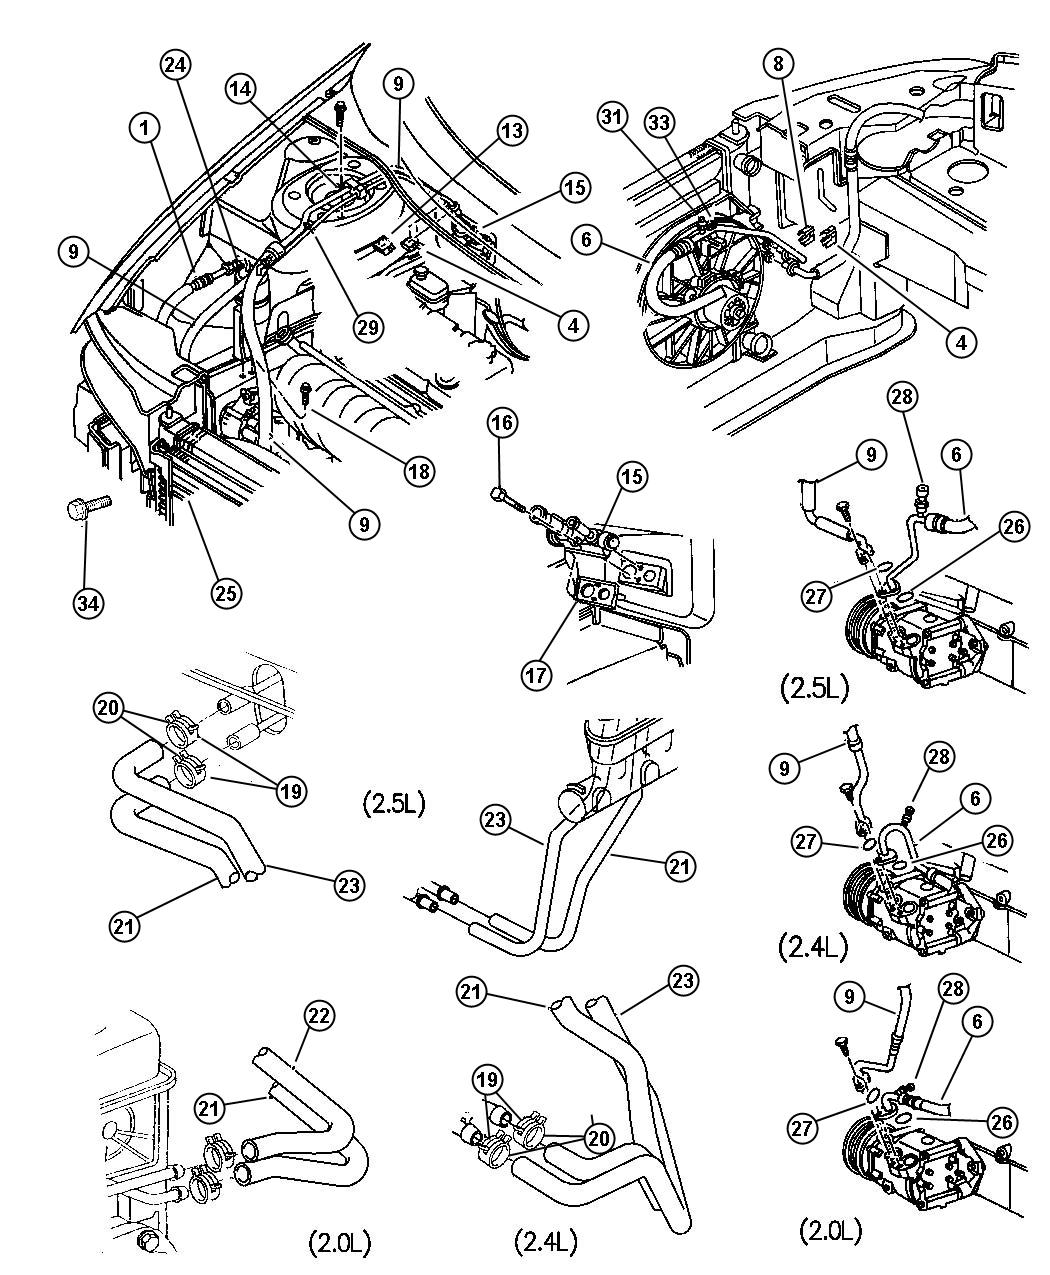 1989 isuzu trooper wiring diagram  isuzu  auto wiring diagram